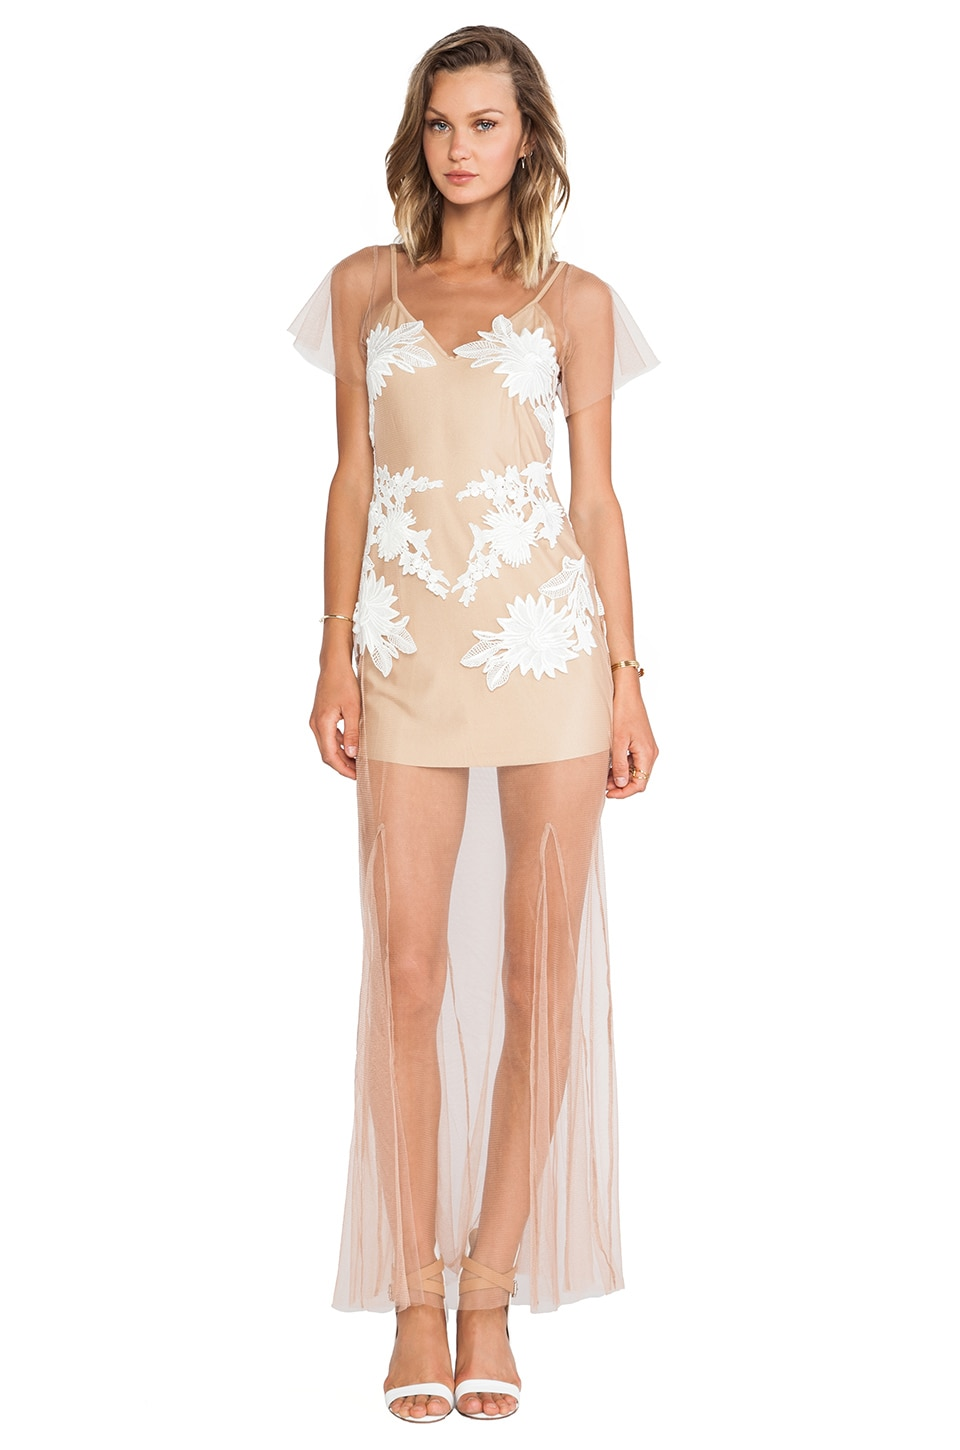 For Love & Lemons Balmy Nights Dress in Nude